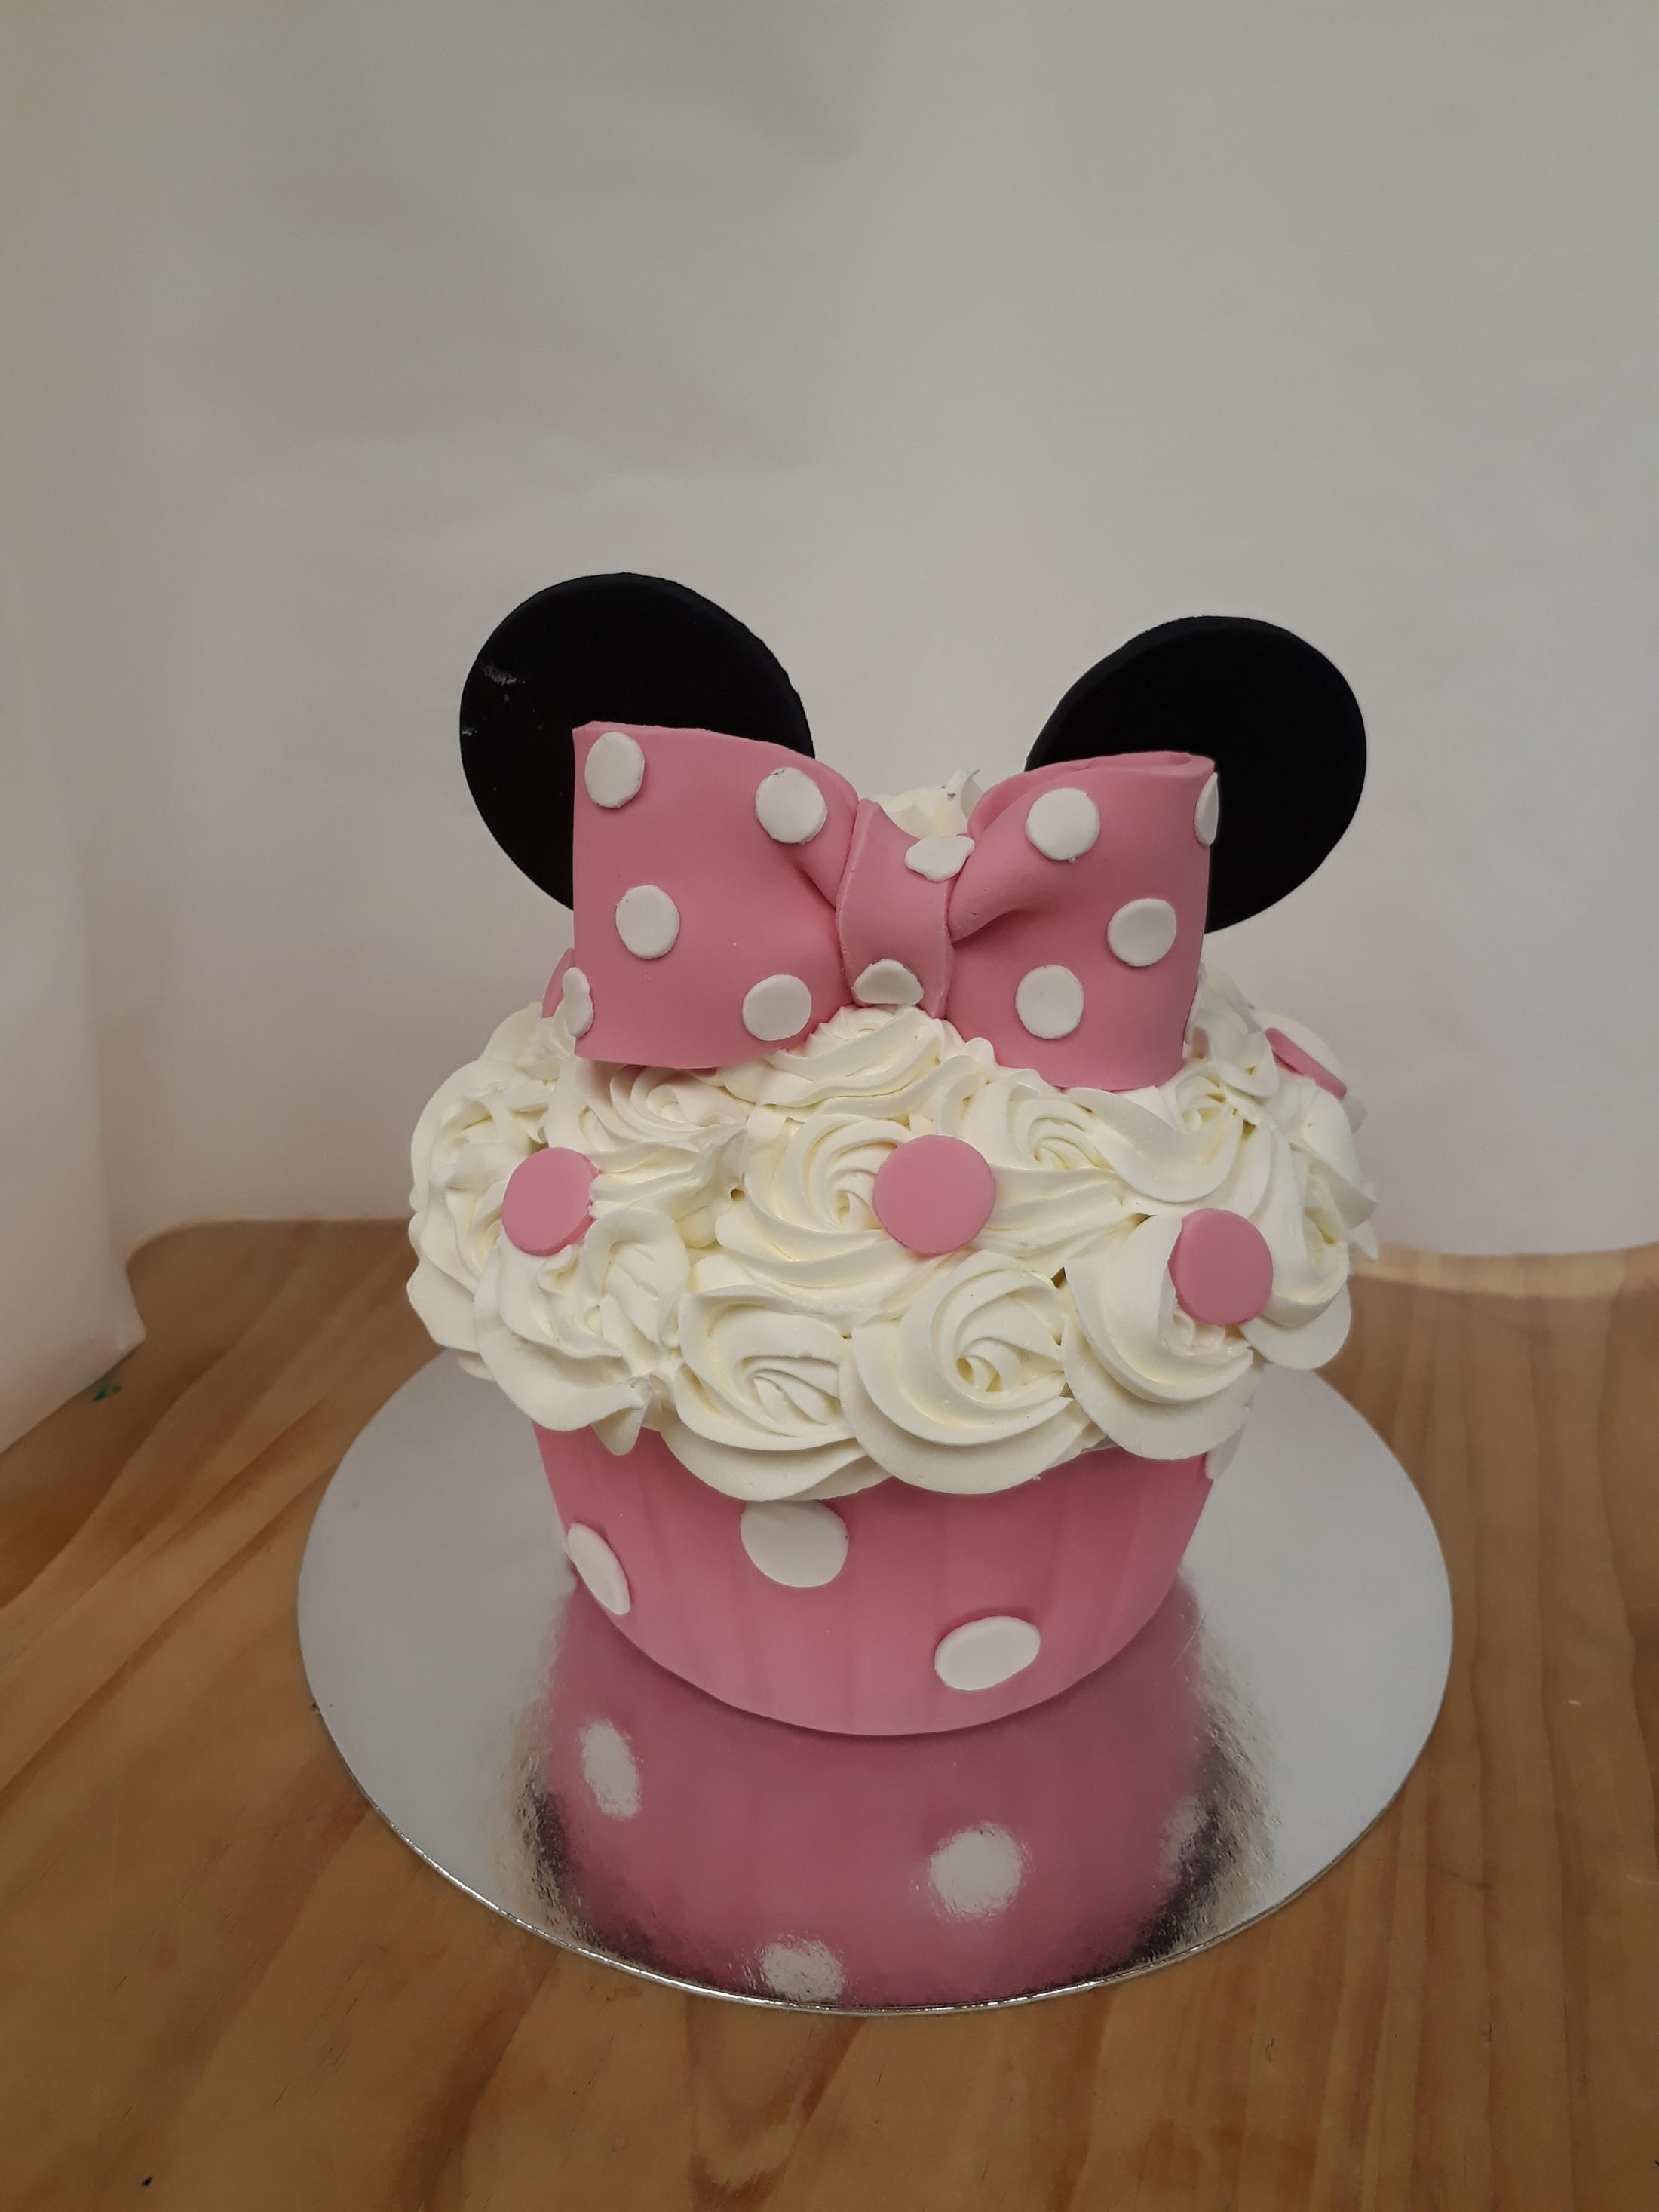 Cake Decorating - Giant Mini Mouse Cupcake